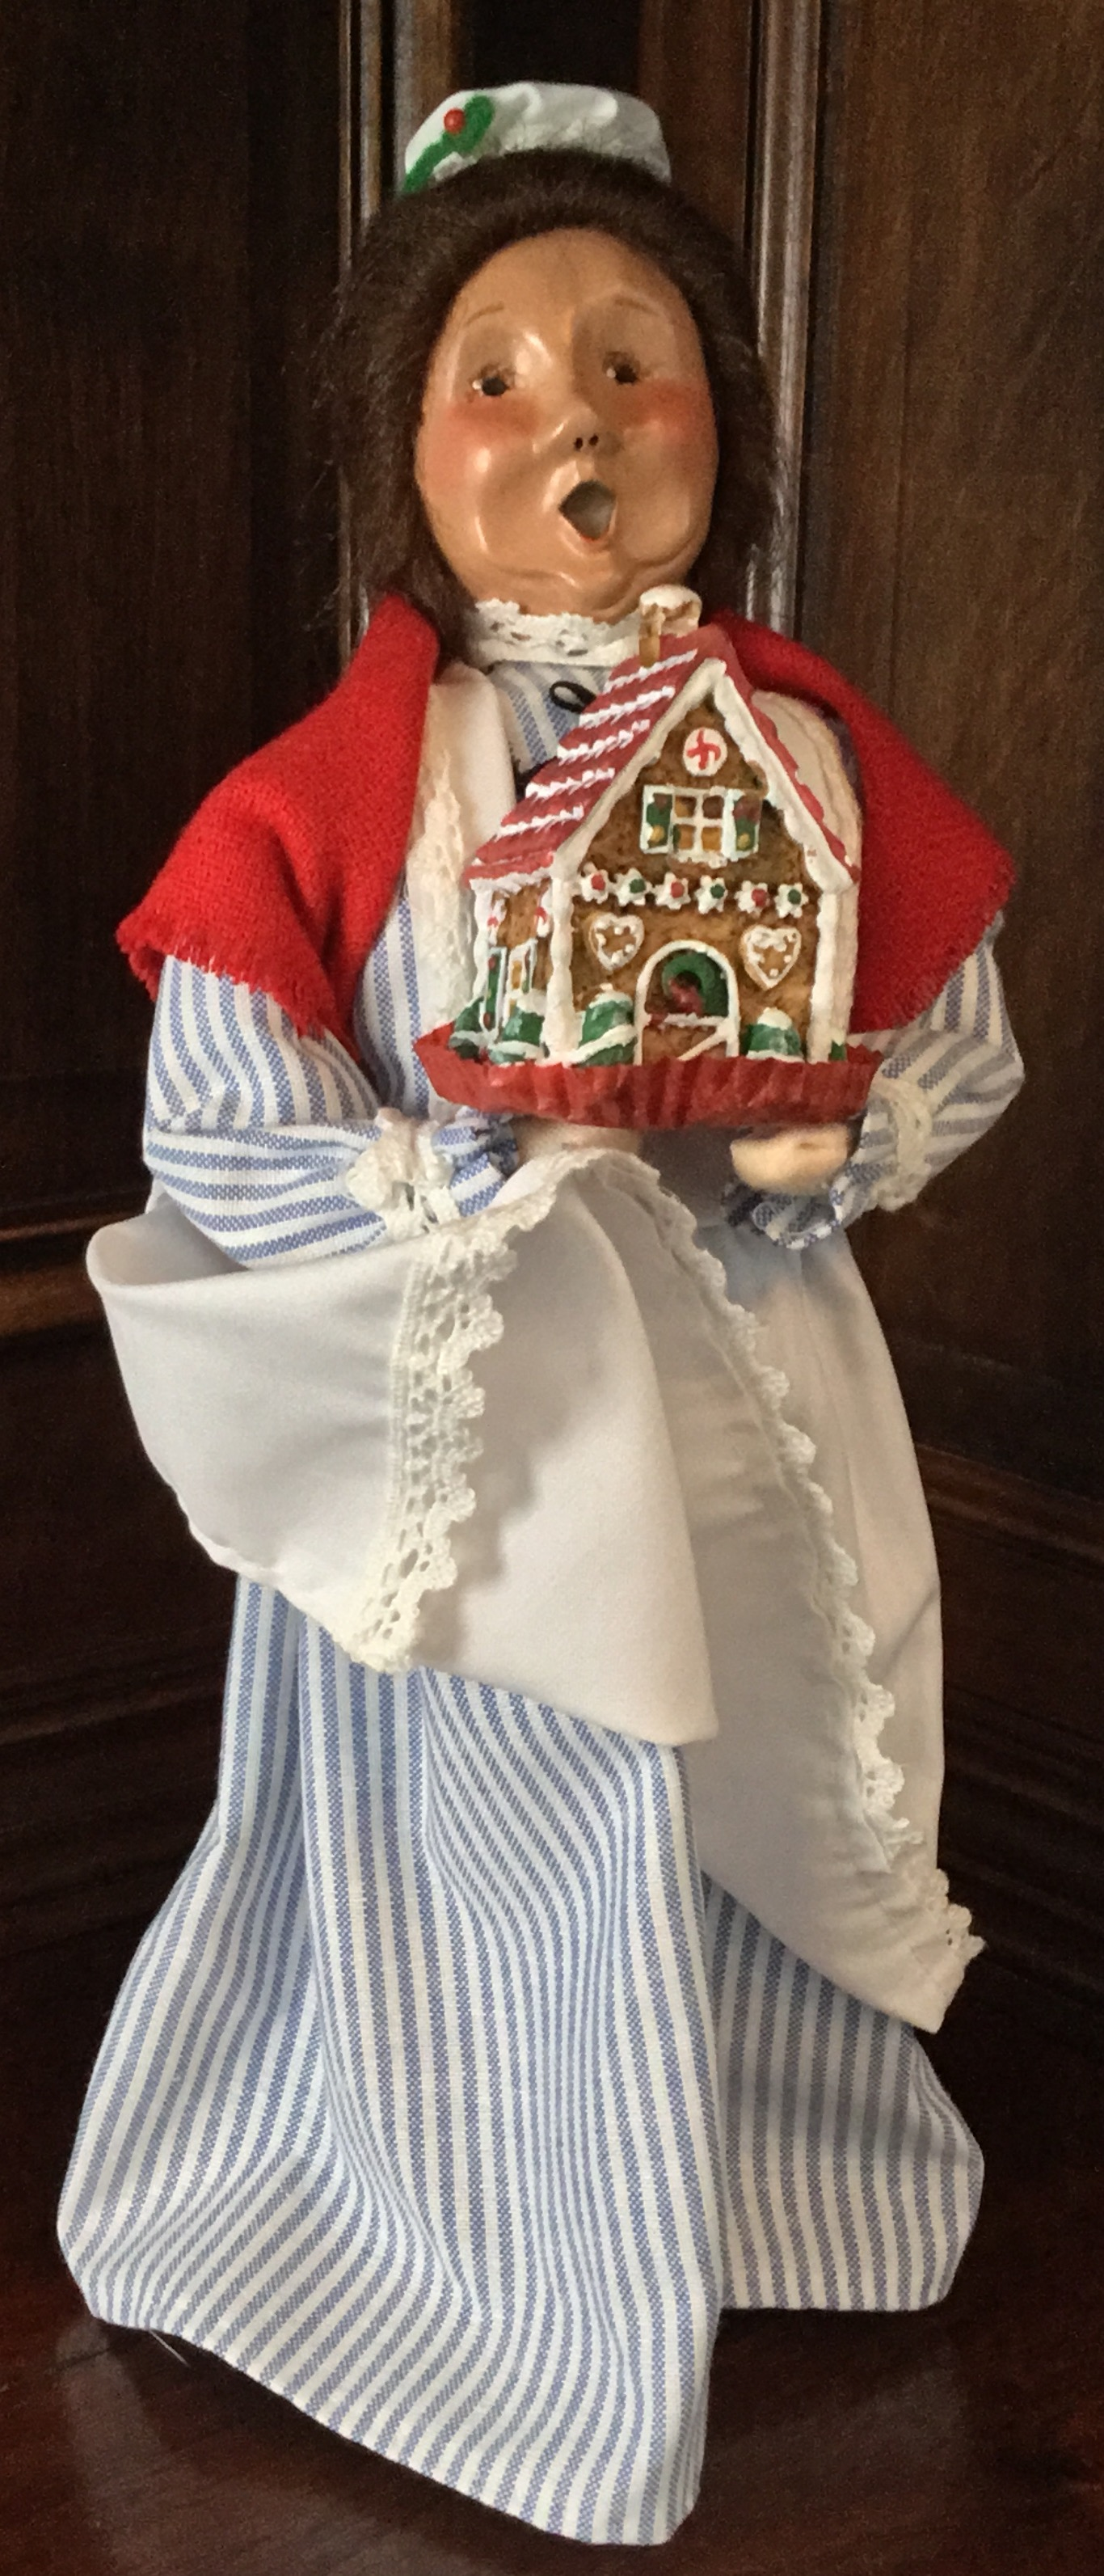 Byers' Choice, Gingerbread House Vendor